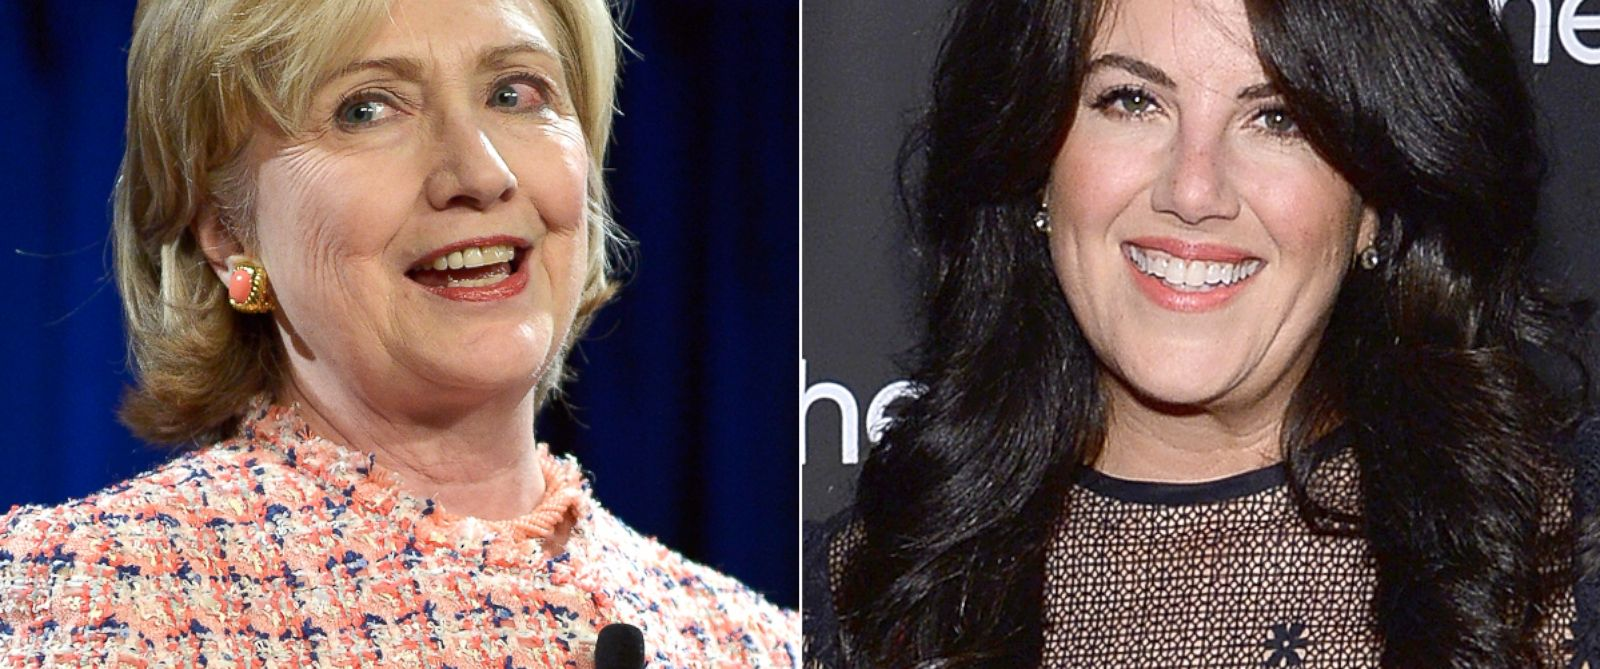 PHOTO: Hillary Clinton delivers the Keynote Address at the 35th Annual Simmons Leadership Conference at Simmons College, April 23, 2014, in Boston. | Monica Lewinsky attends the Kitchen Spring Gala Benefit 2014, May 22, 2014, in New York.